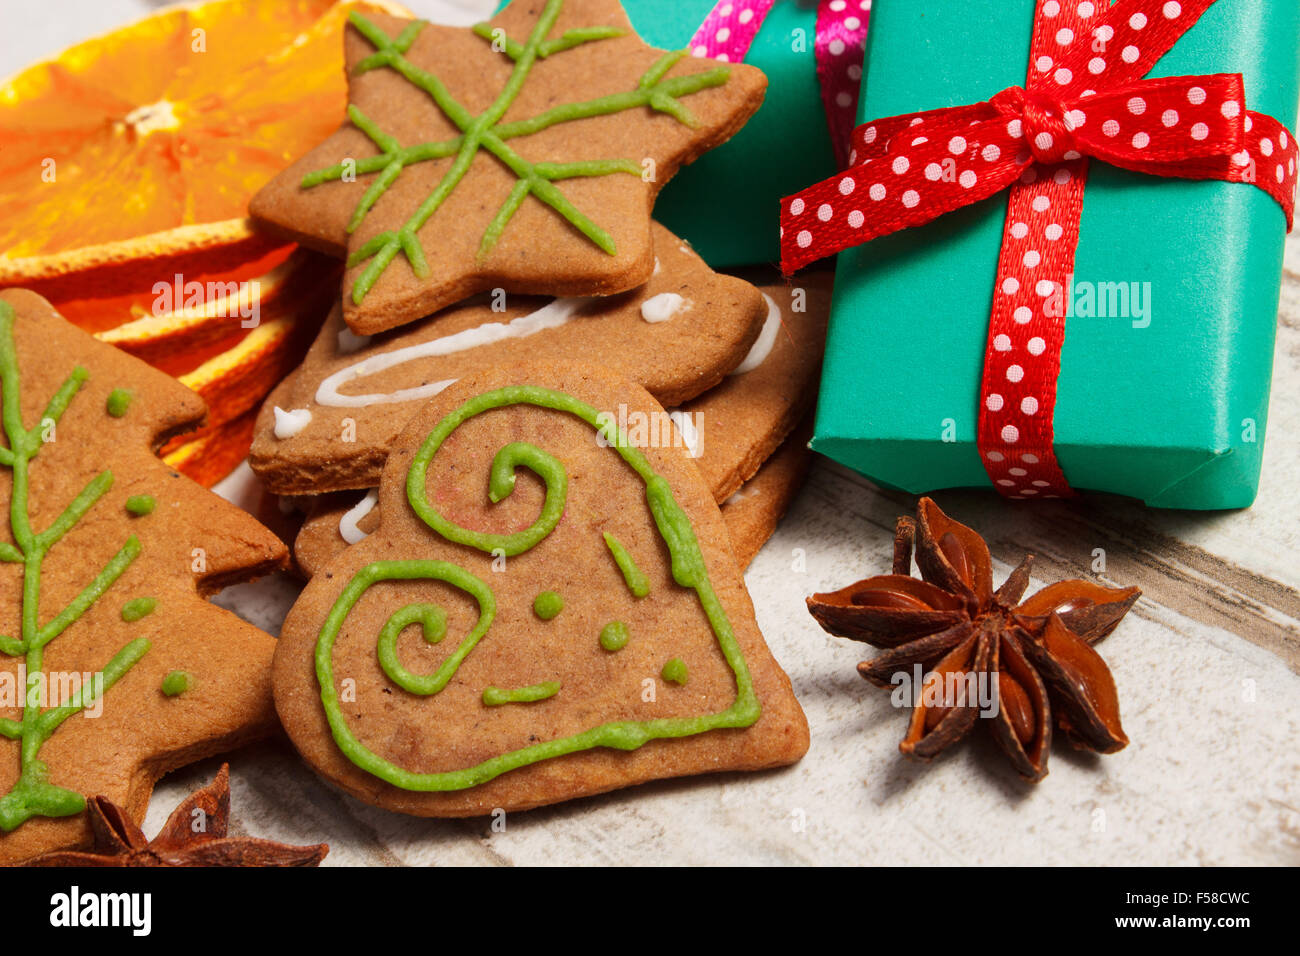 Cookies Package Stock Photos & Cookies Package Stock Images - Page ...